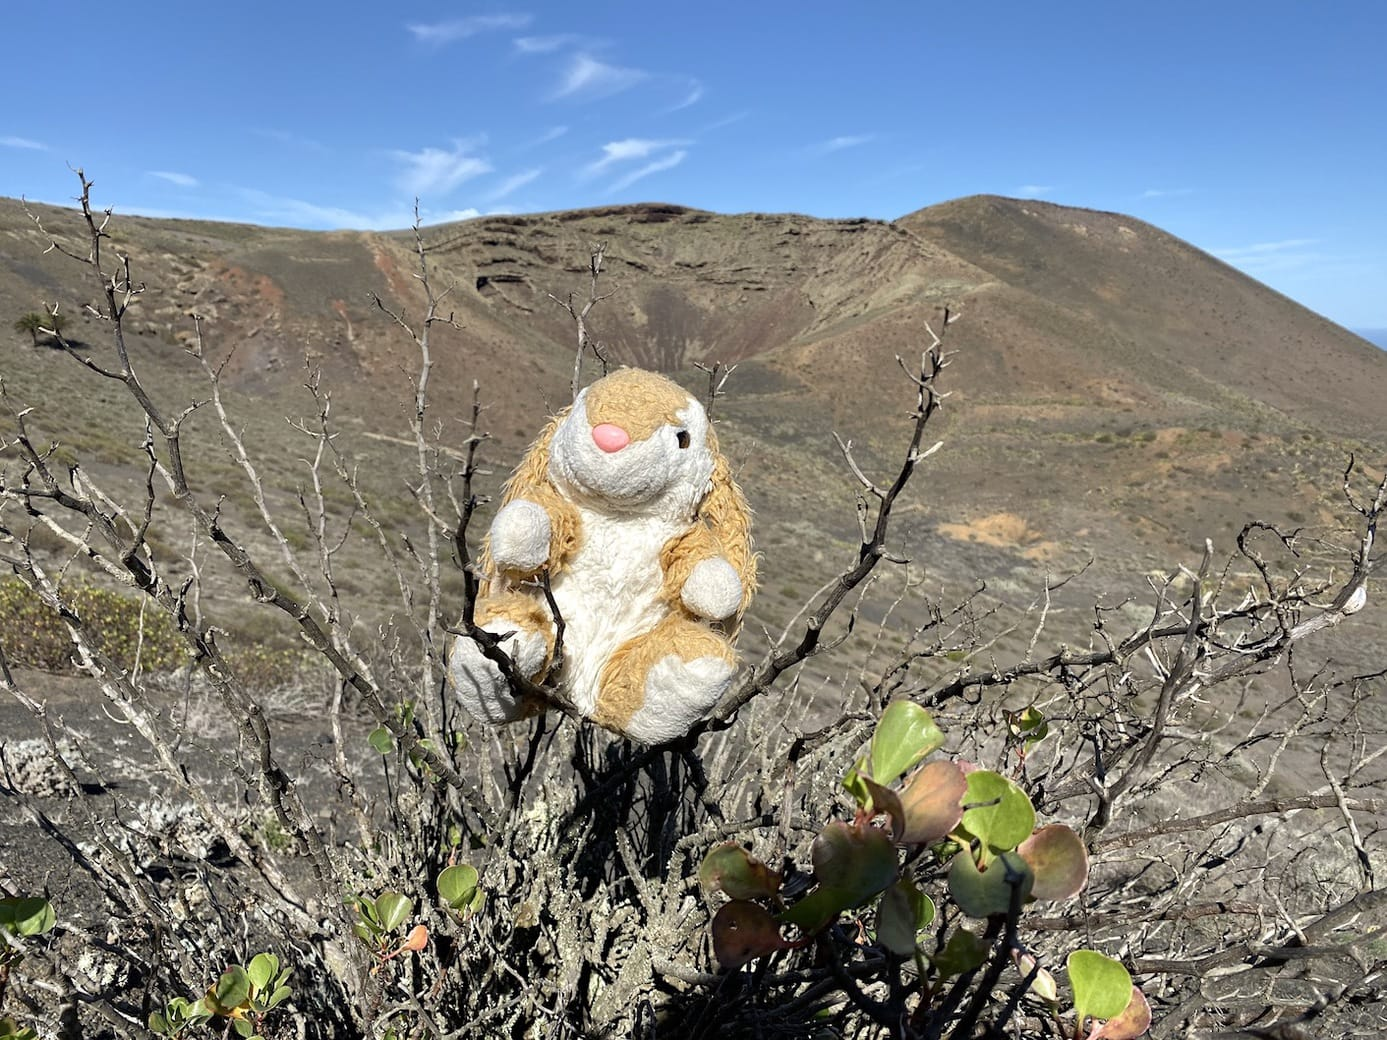 Bunny posing with a crater